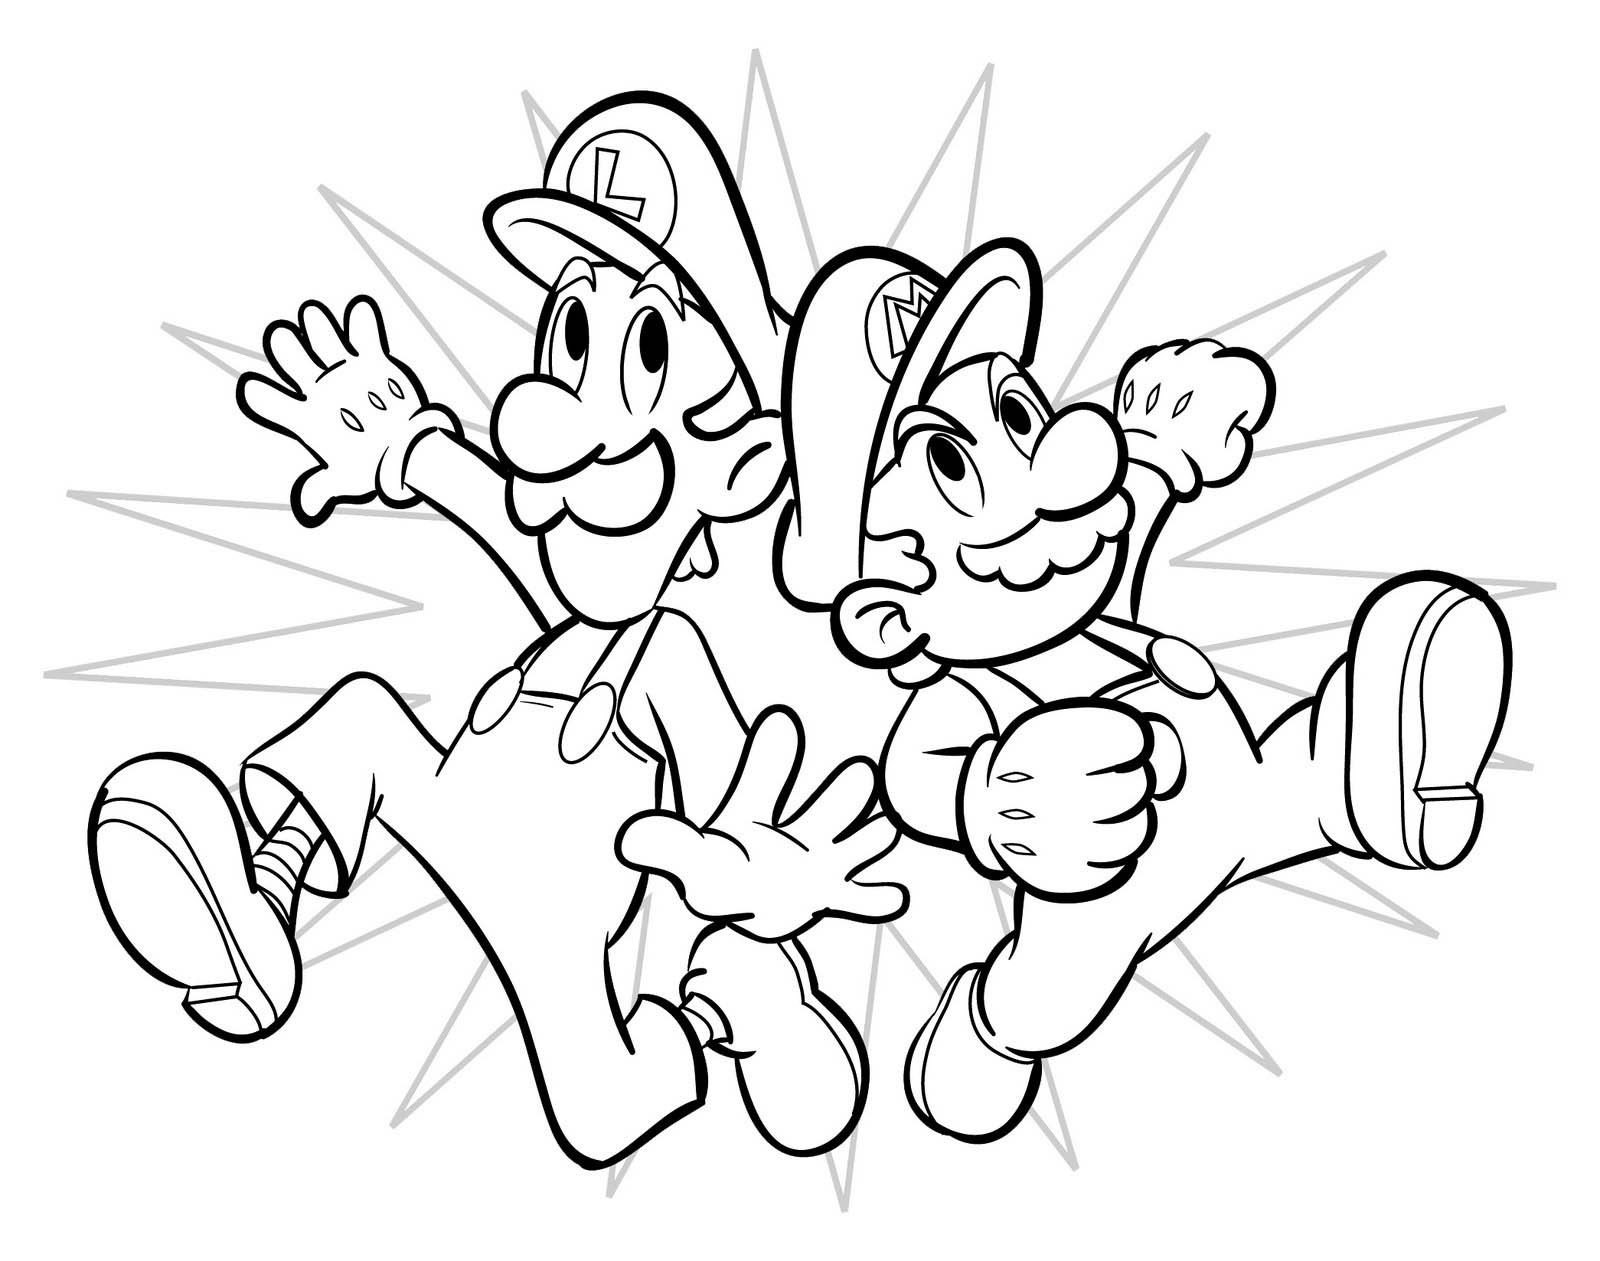 Free printable mario coloring pages for kids for Free printable coloring pages for adults and kids